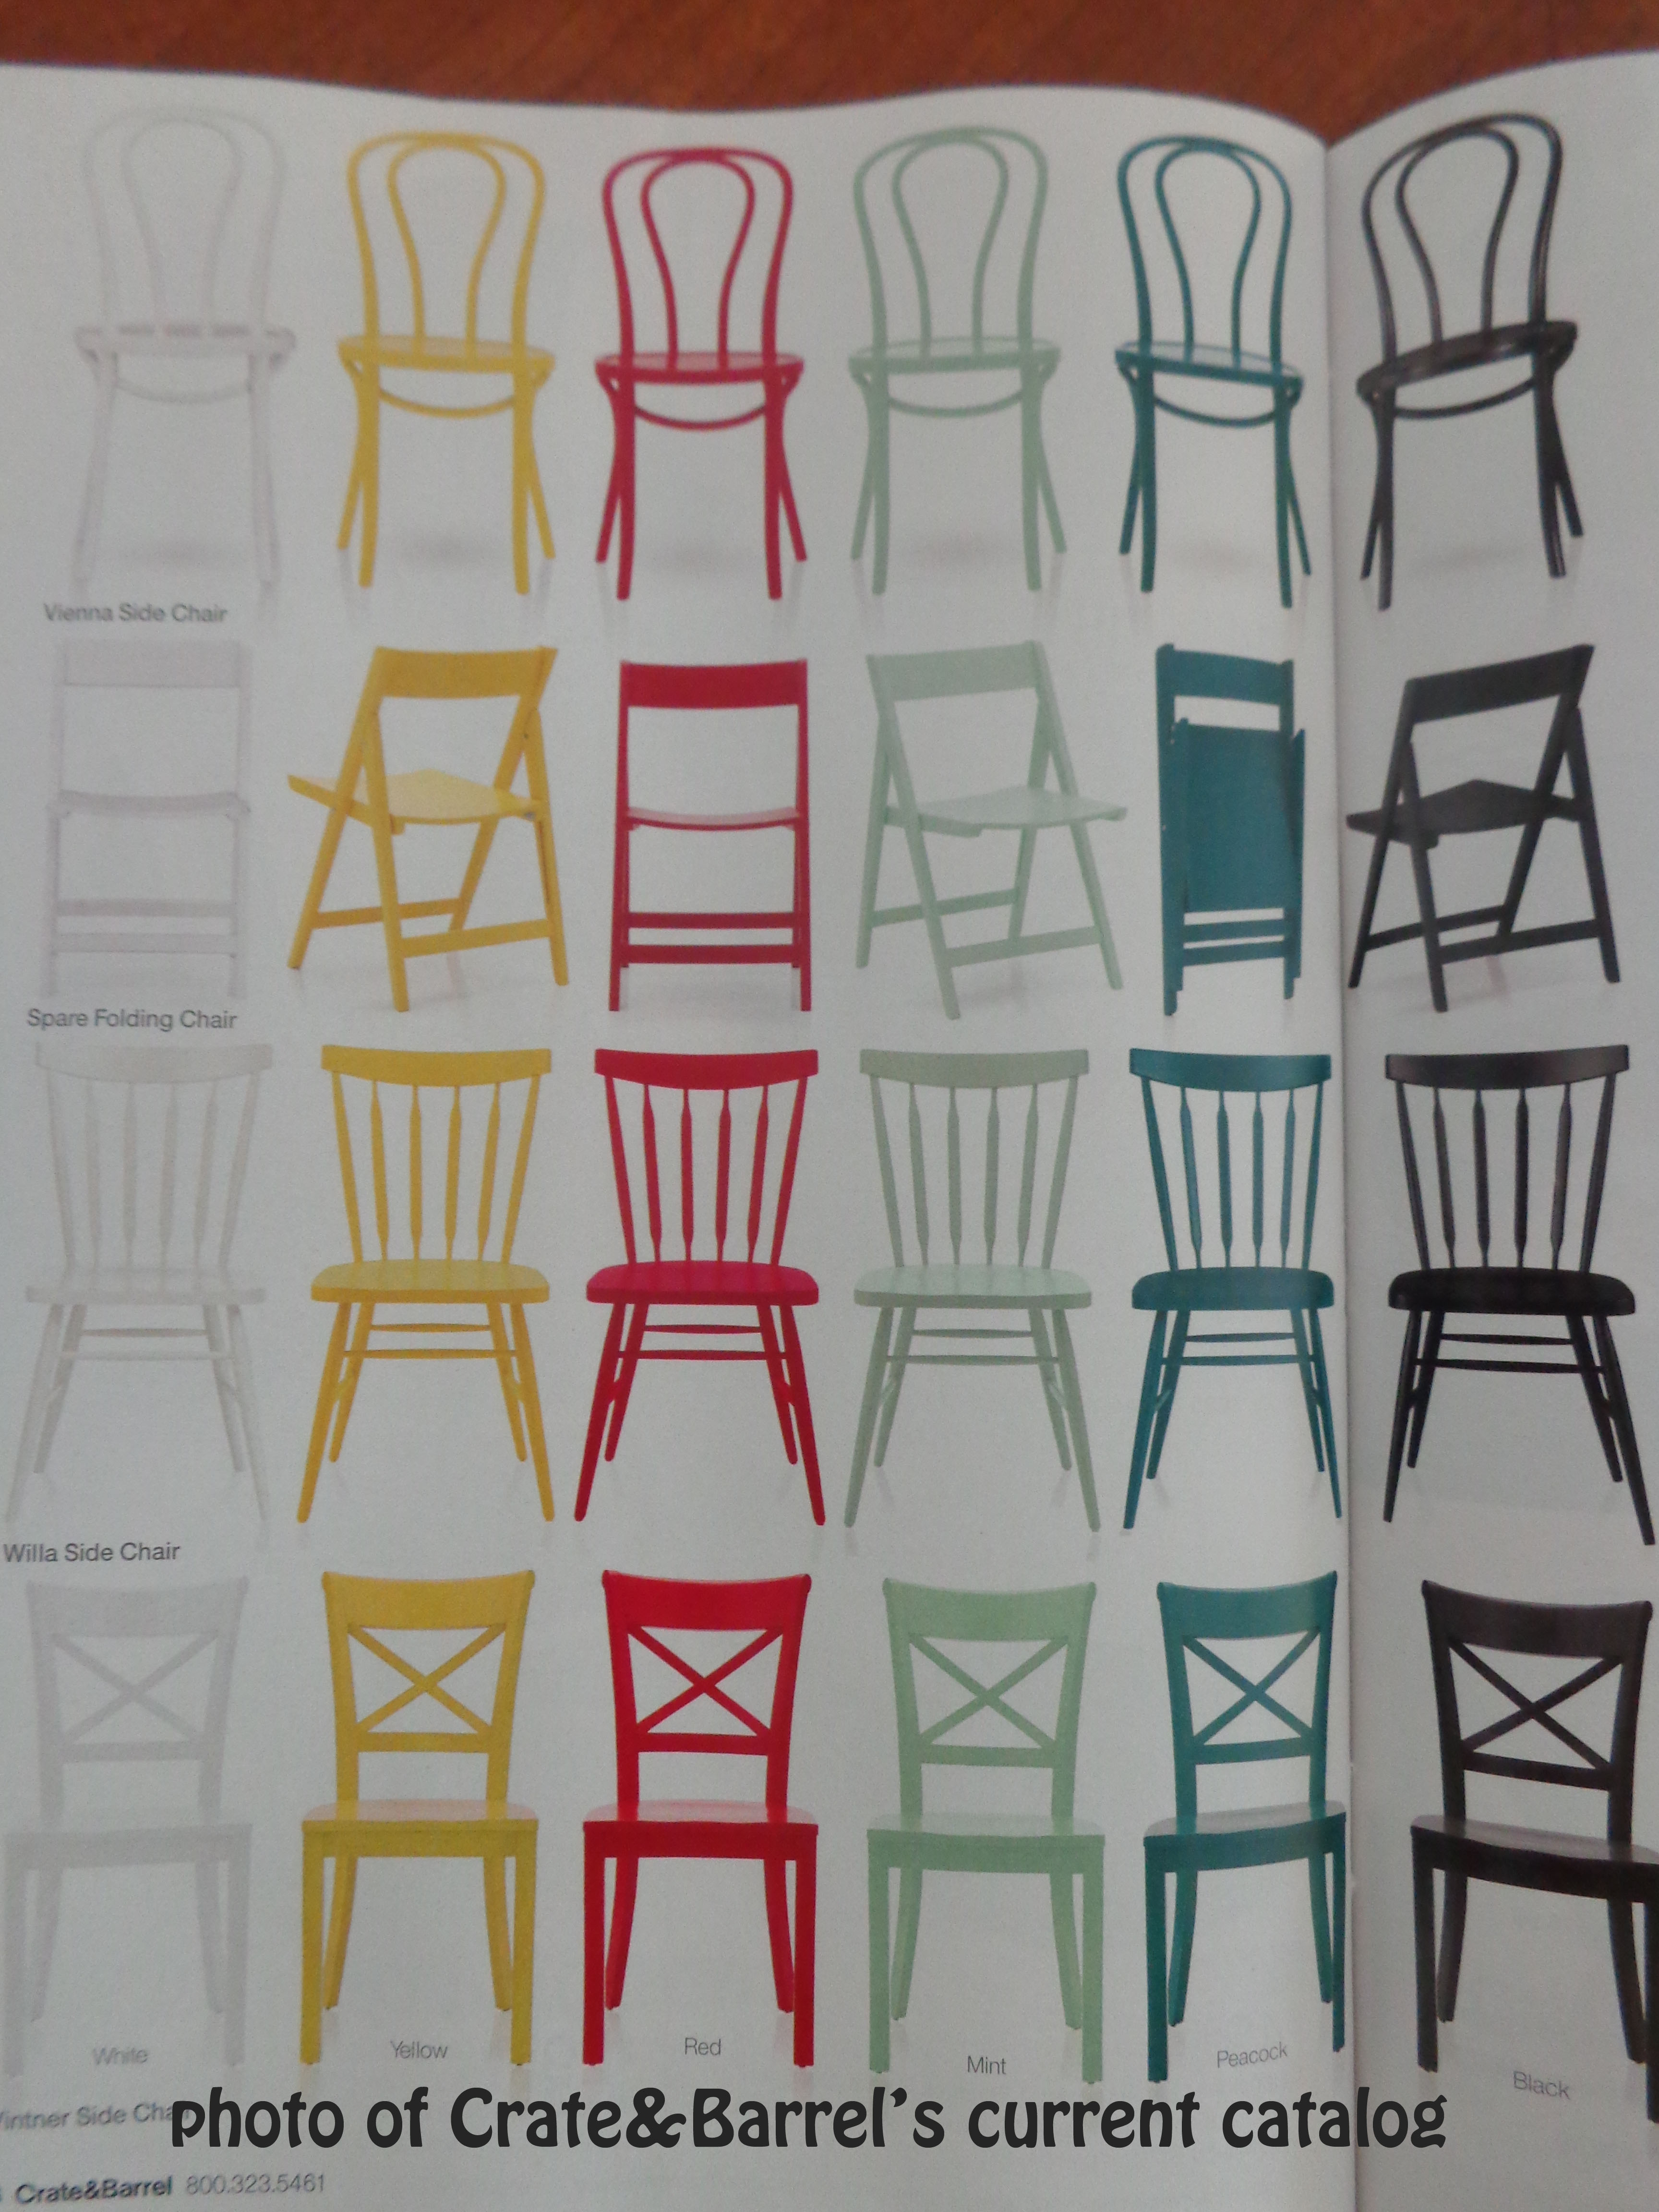 Different colored dining chairs - Doesn T This Post Make You Want To Paint All Of Your Dining Chairs A Different Color Or Paint All Of The Walls White And Add A Reclaimed Wood Wall As An